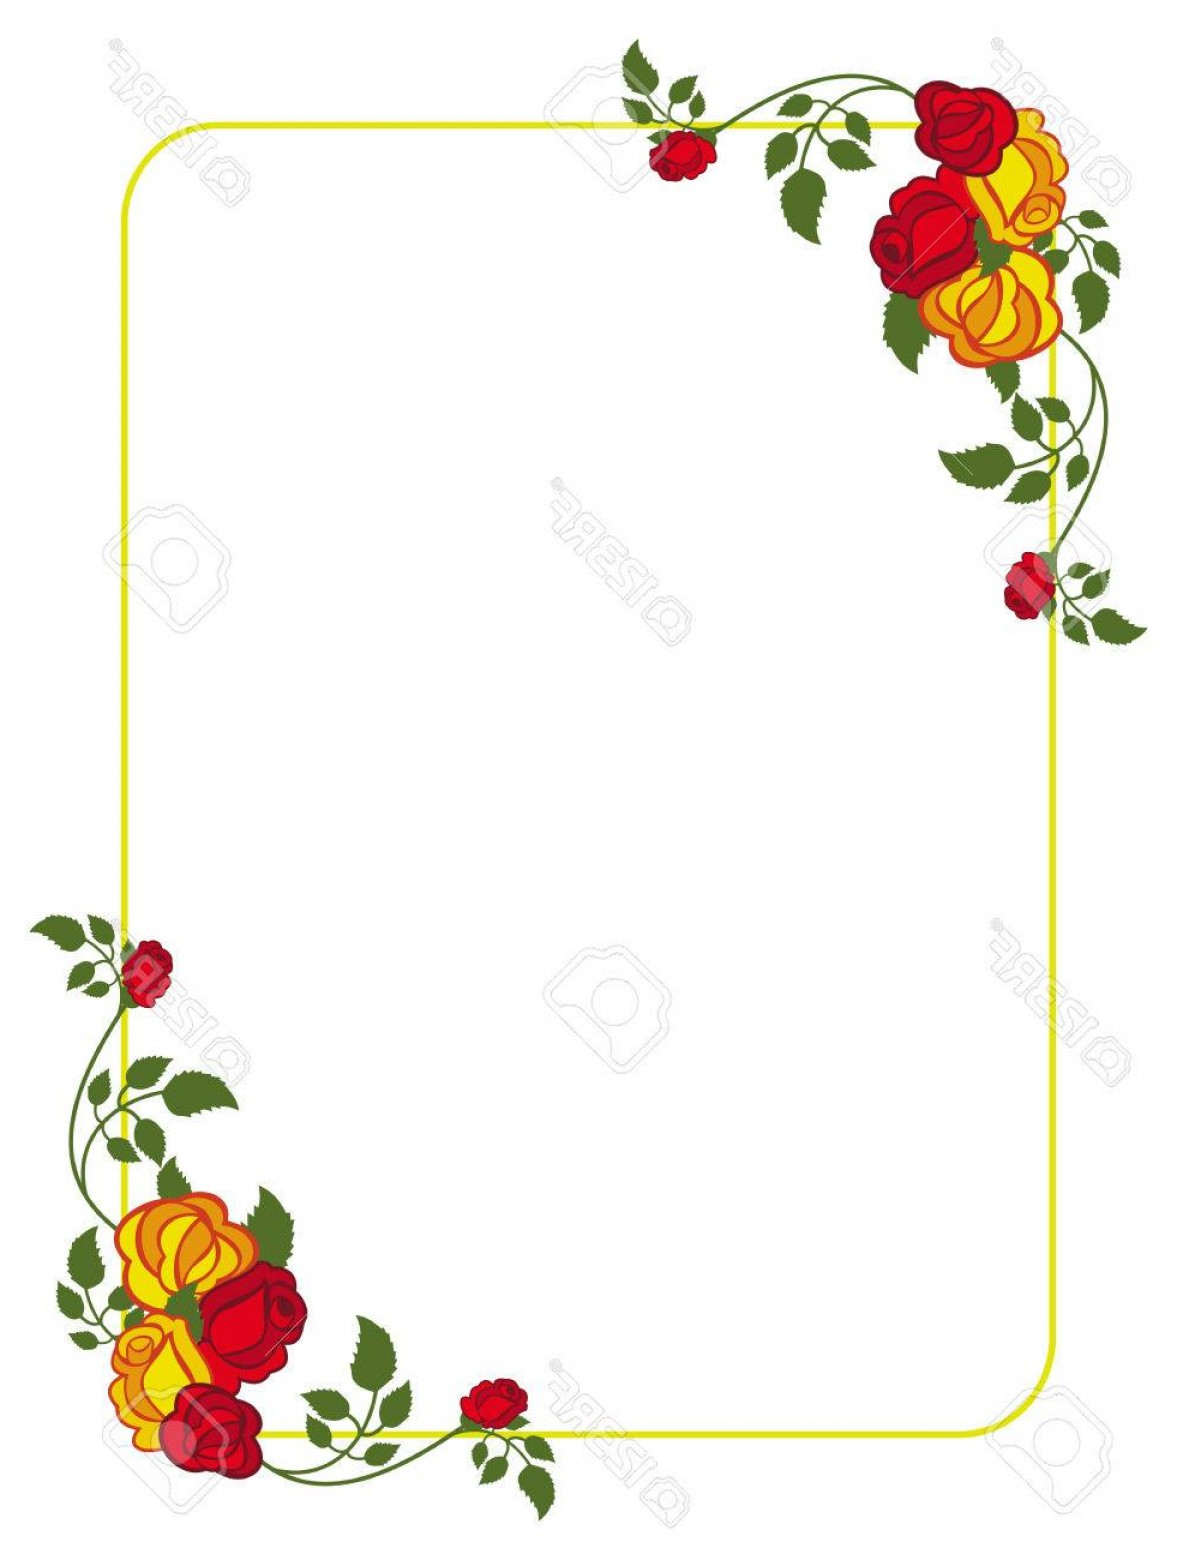 Yellow rose frame clipart vector free library Photostock Vector Vertical Frame With Red And Yellow Roses ... vector free library